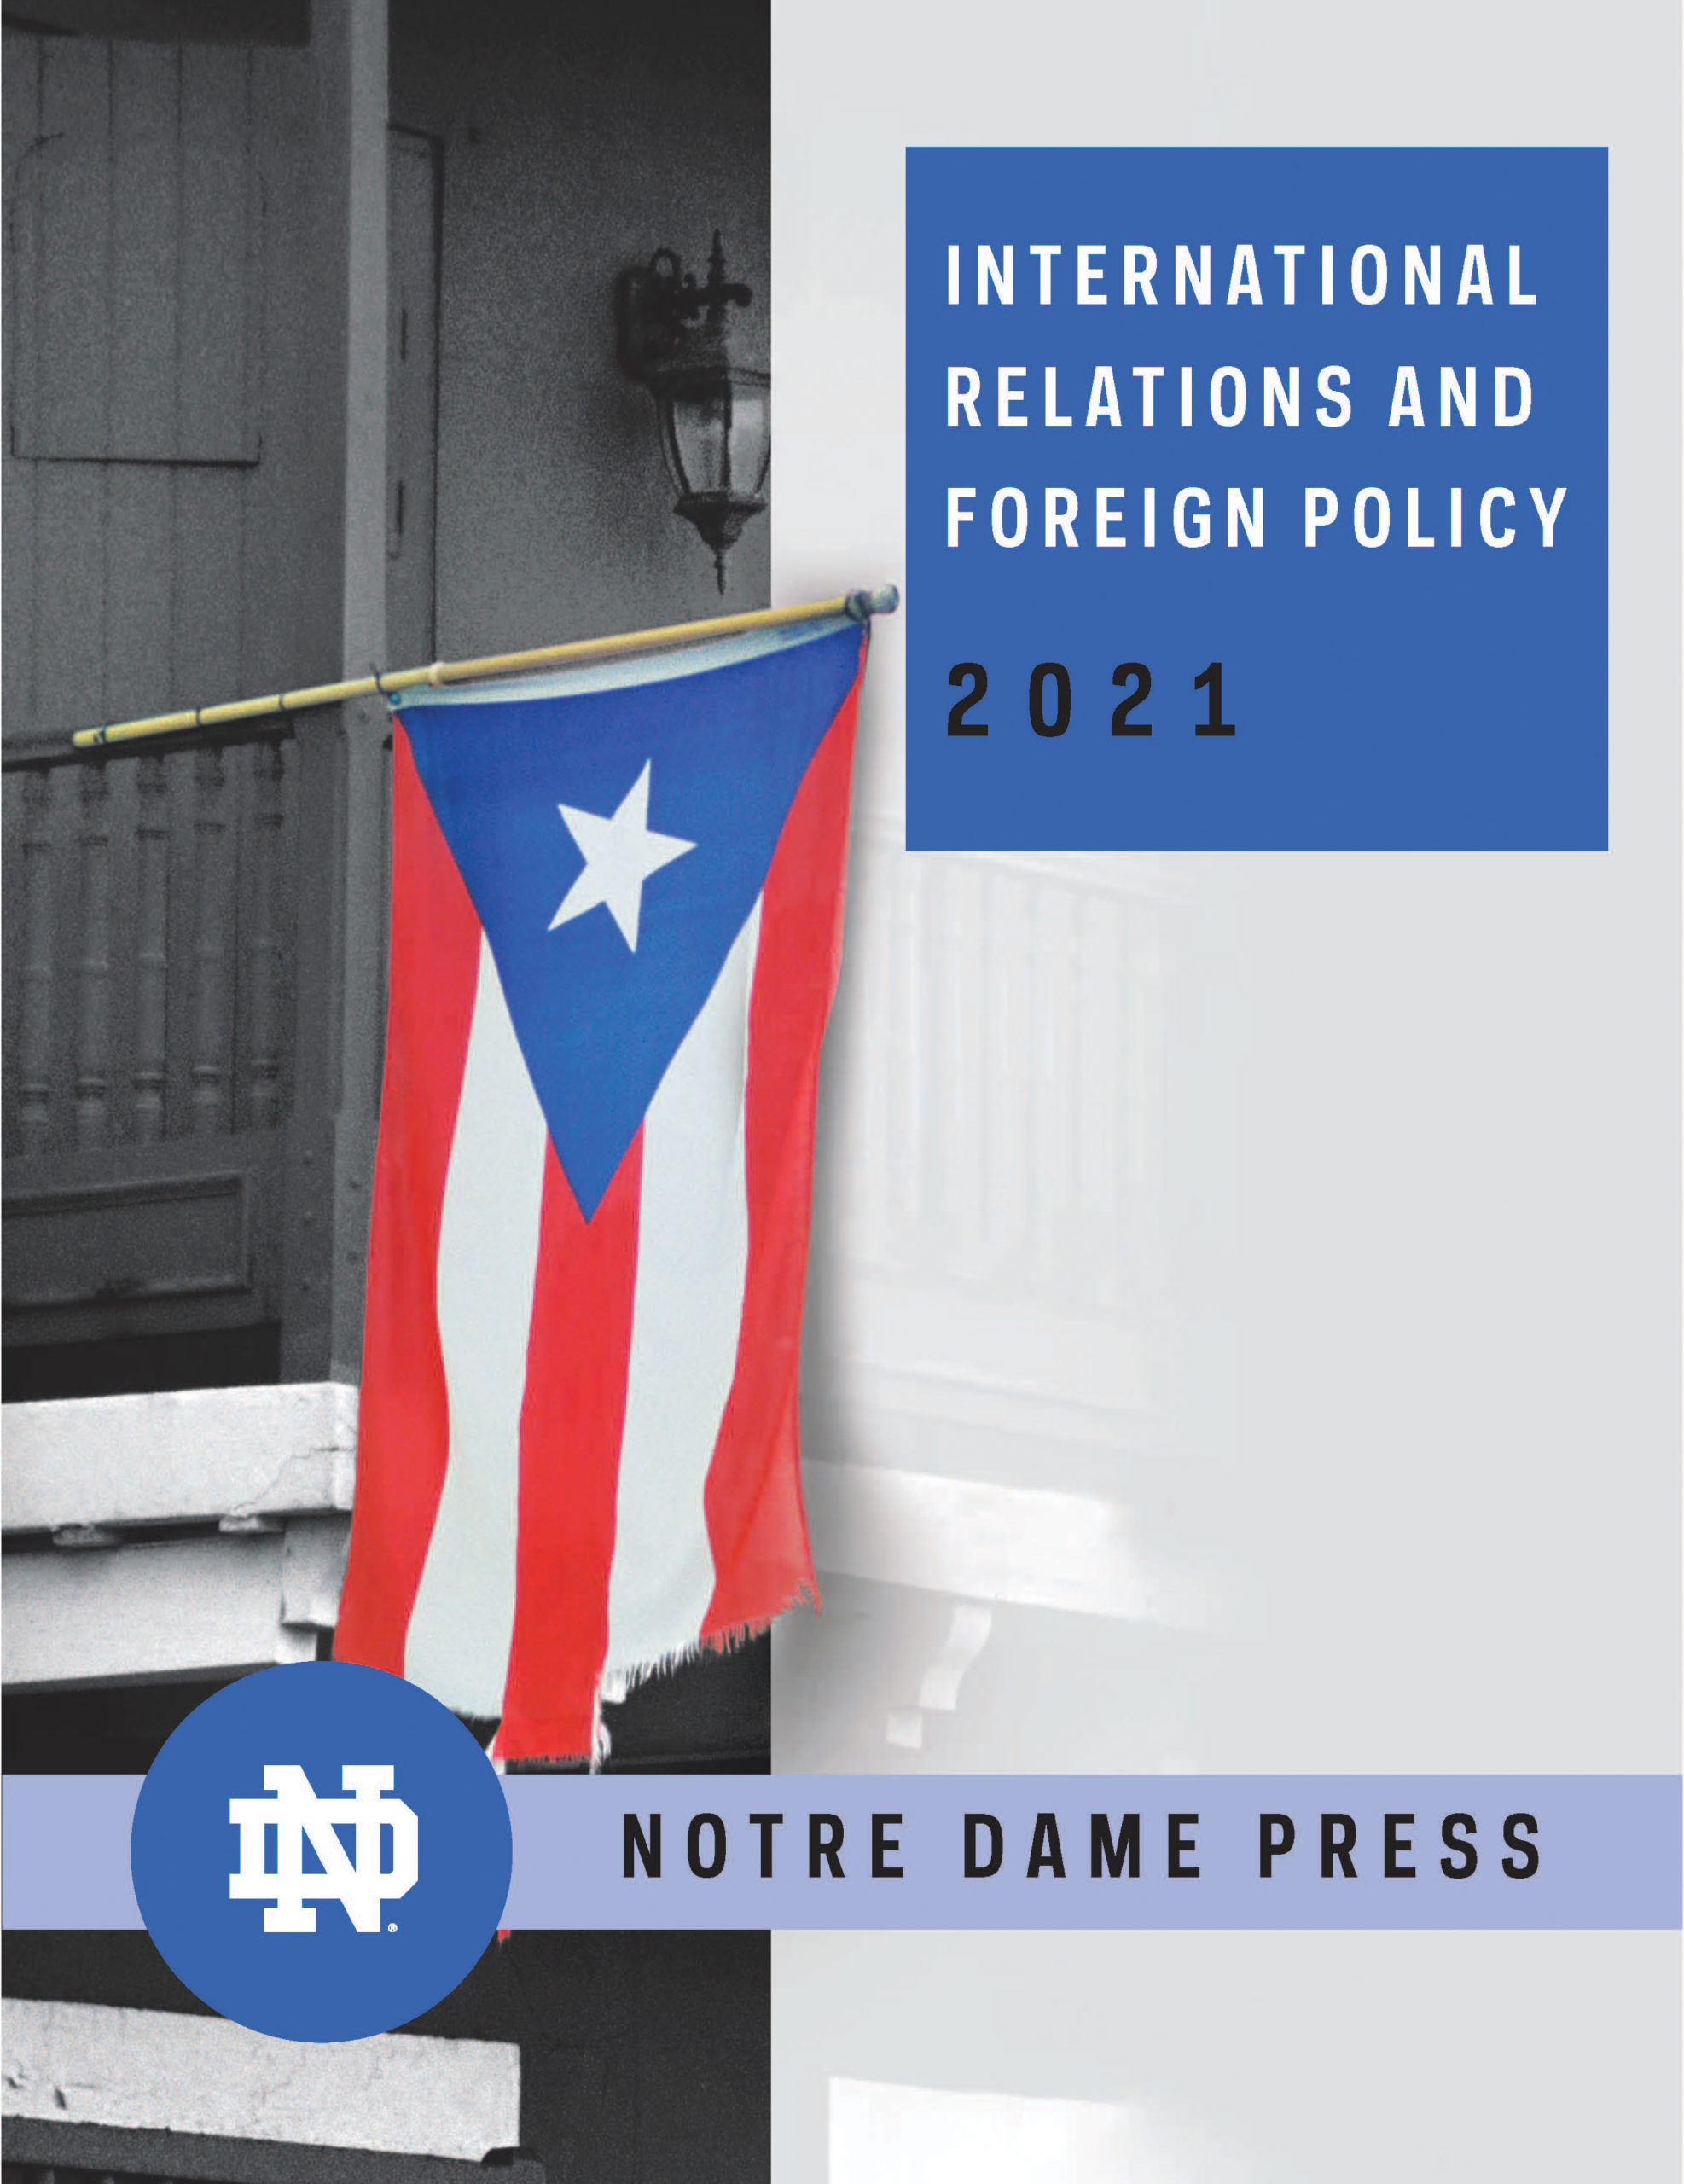 International Relations and Foreign Policy 2021